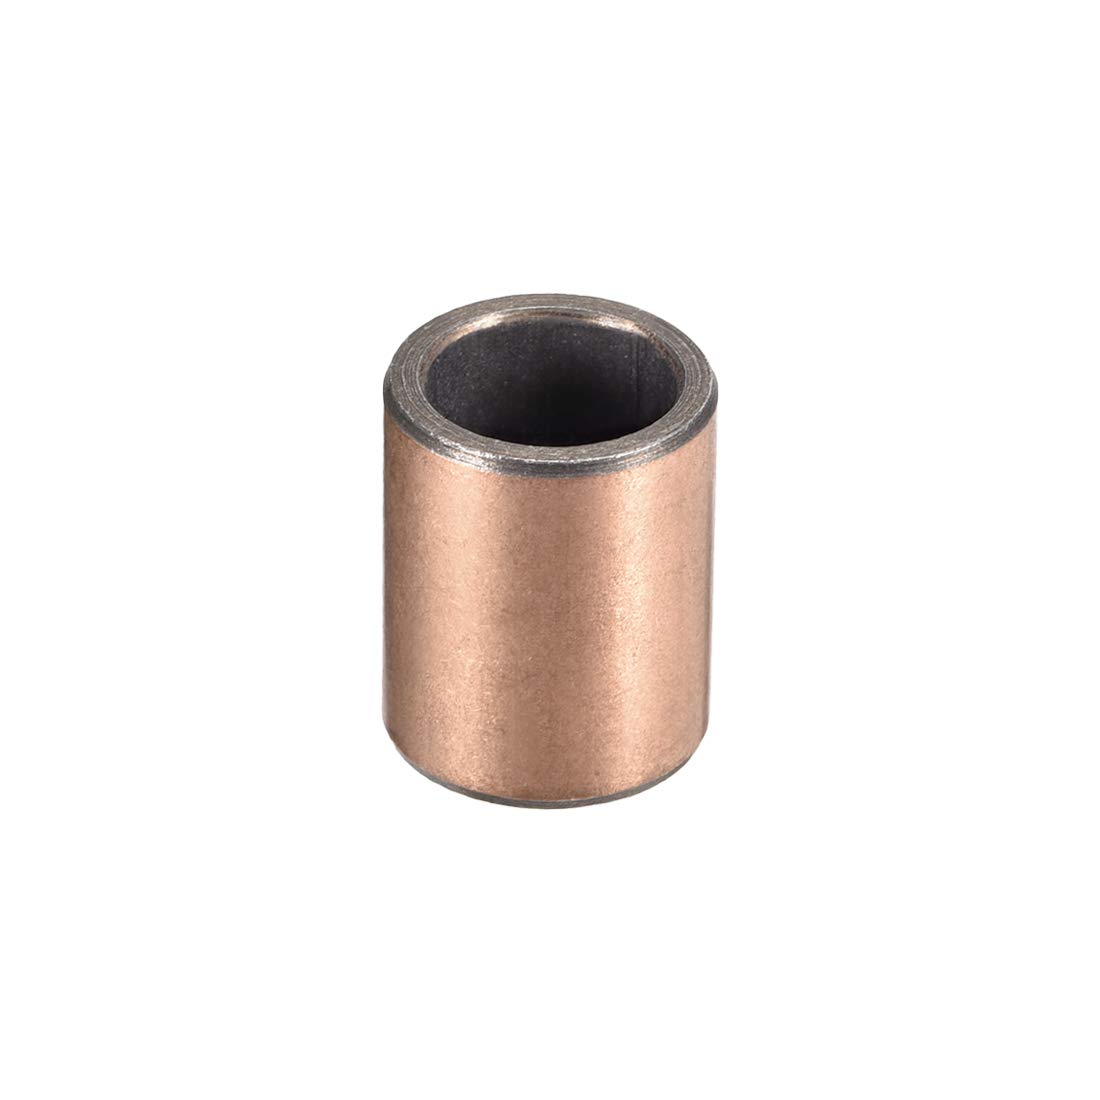 uxcell Sleeve Bearing 12mm Bore x 16mm OD x 20mm Length Plain Bearings Wrapped Oilless Bushings